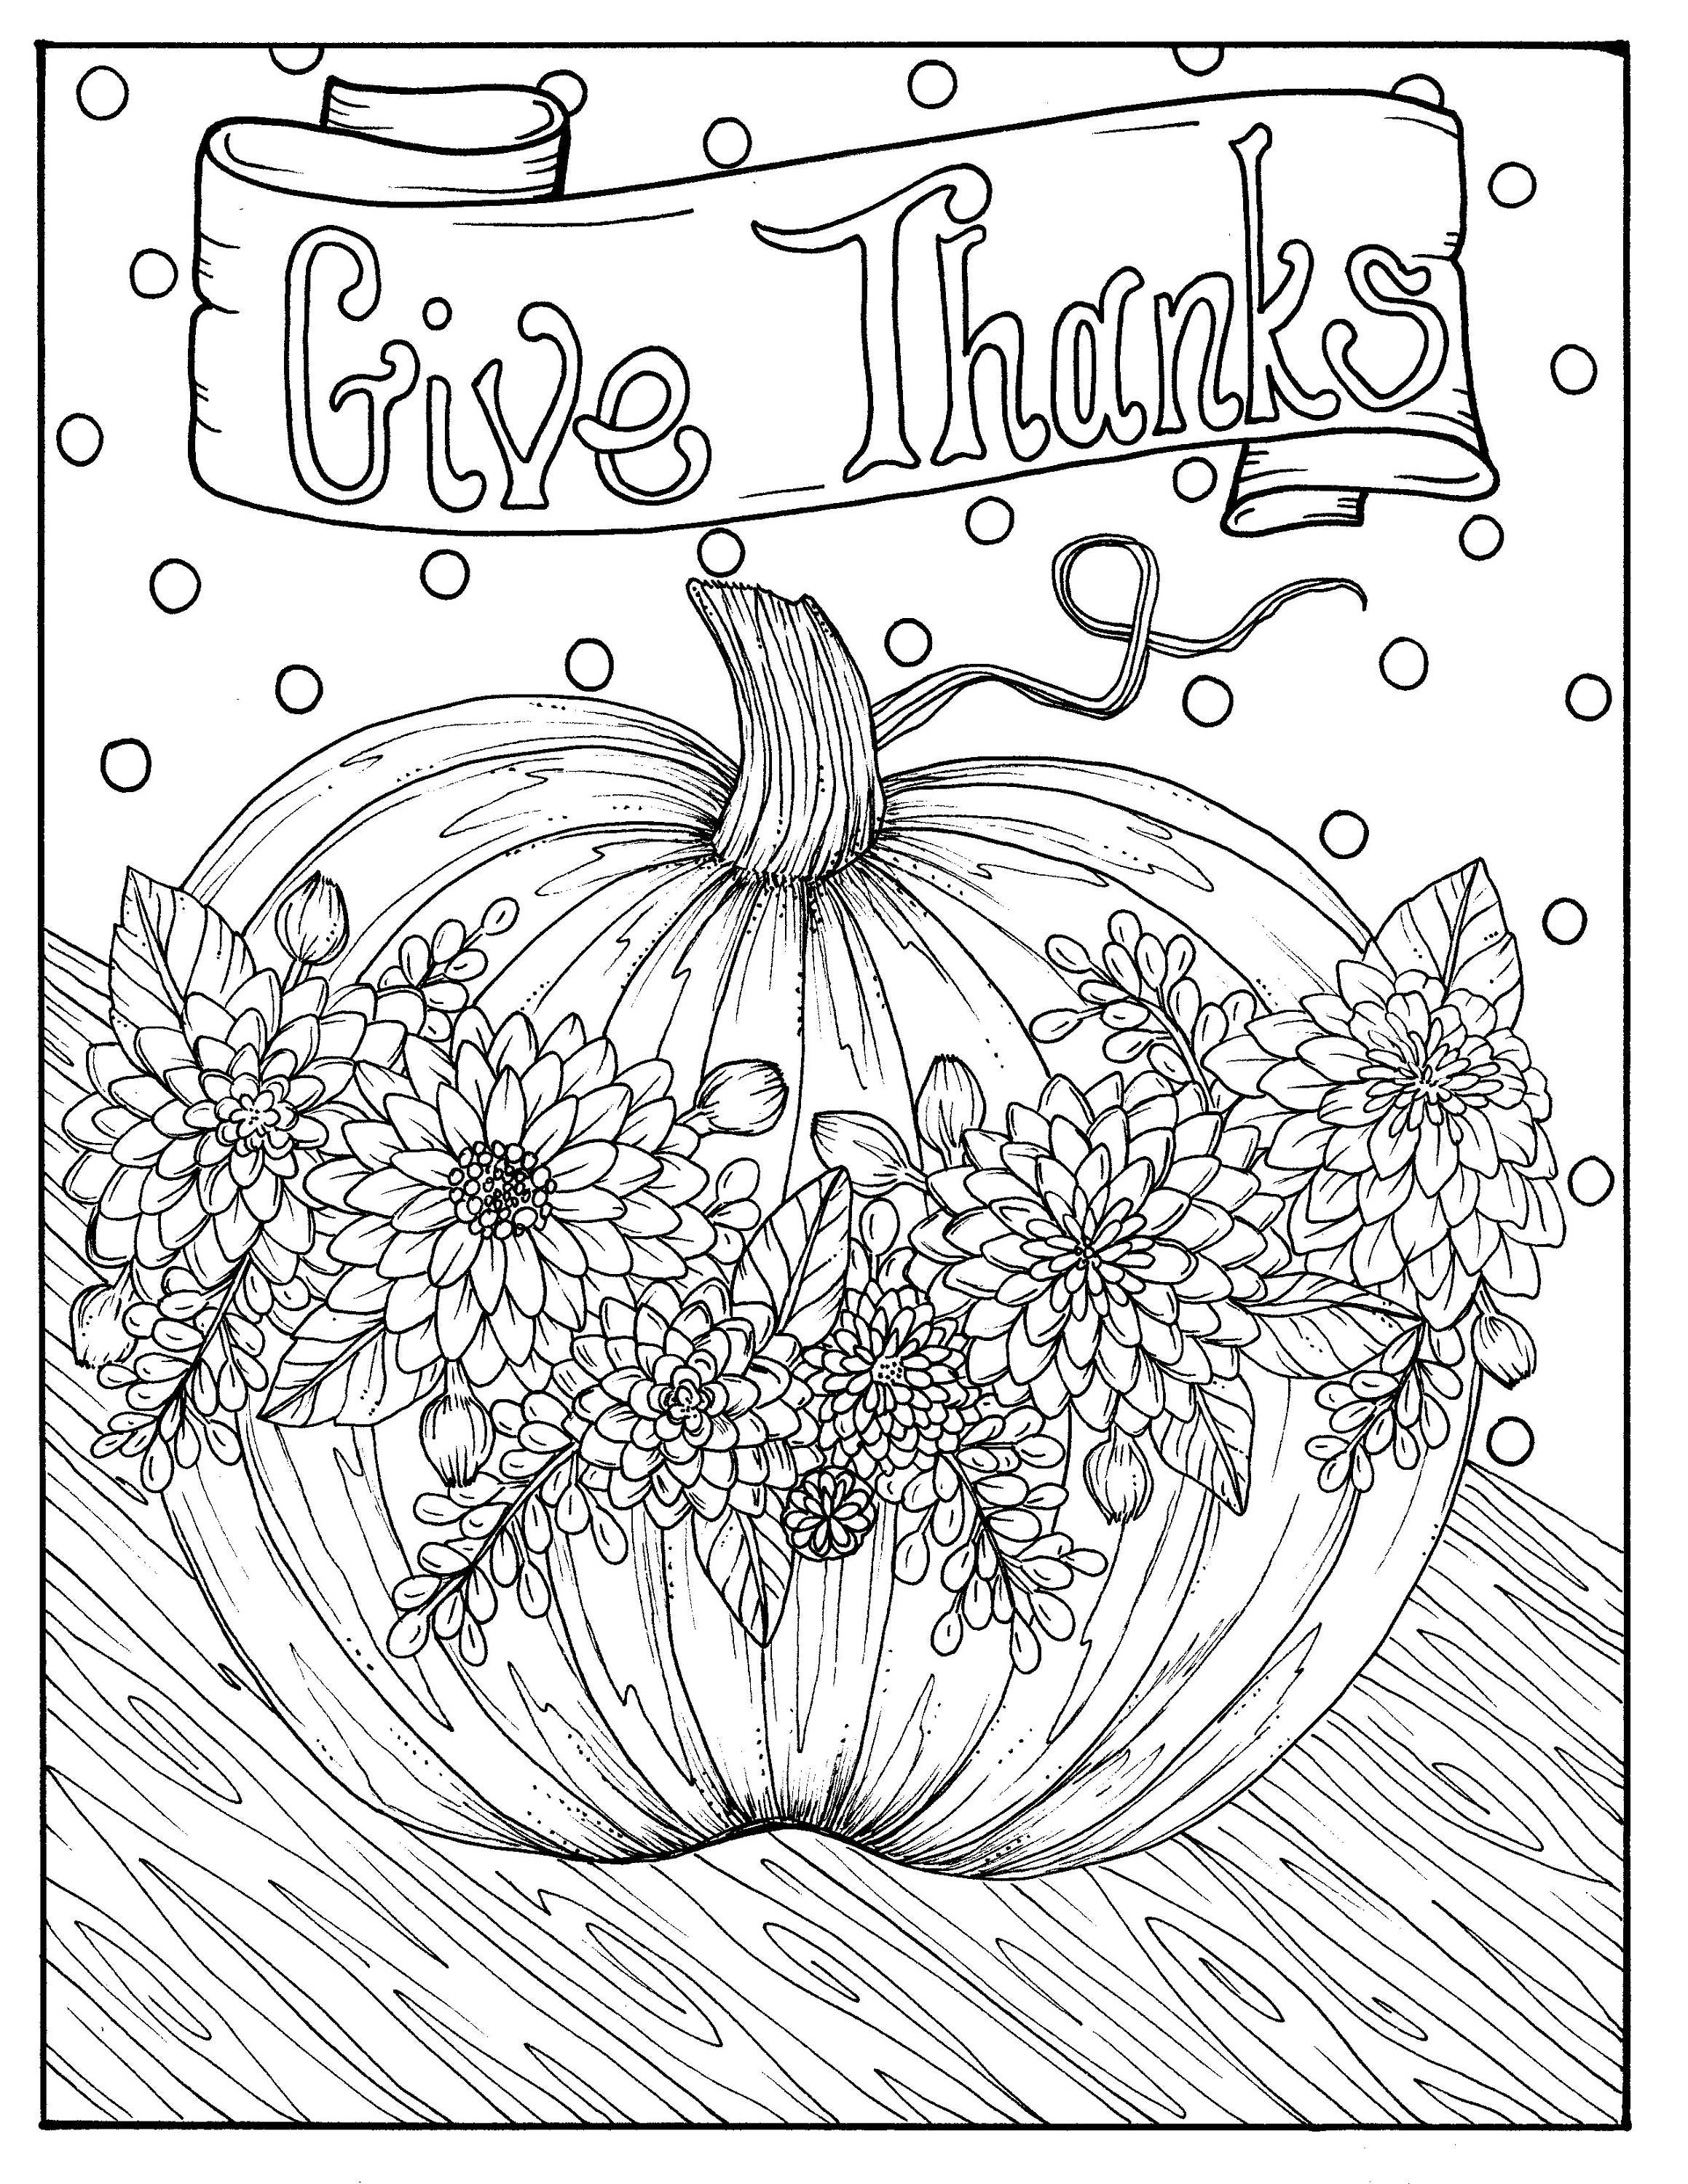 Give Thanks Digital Coloring page